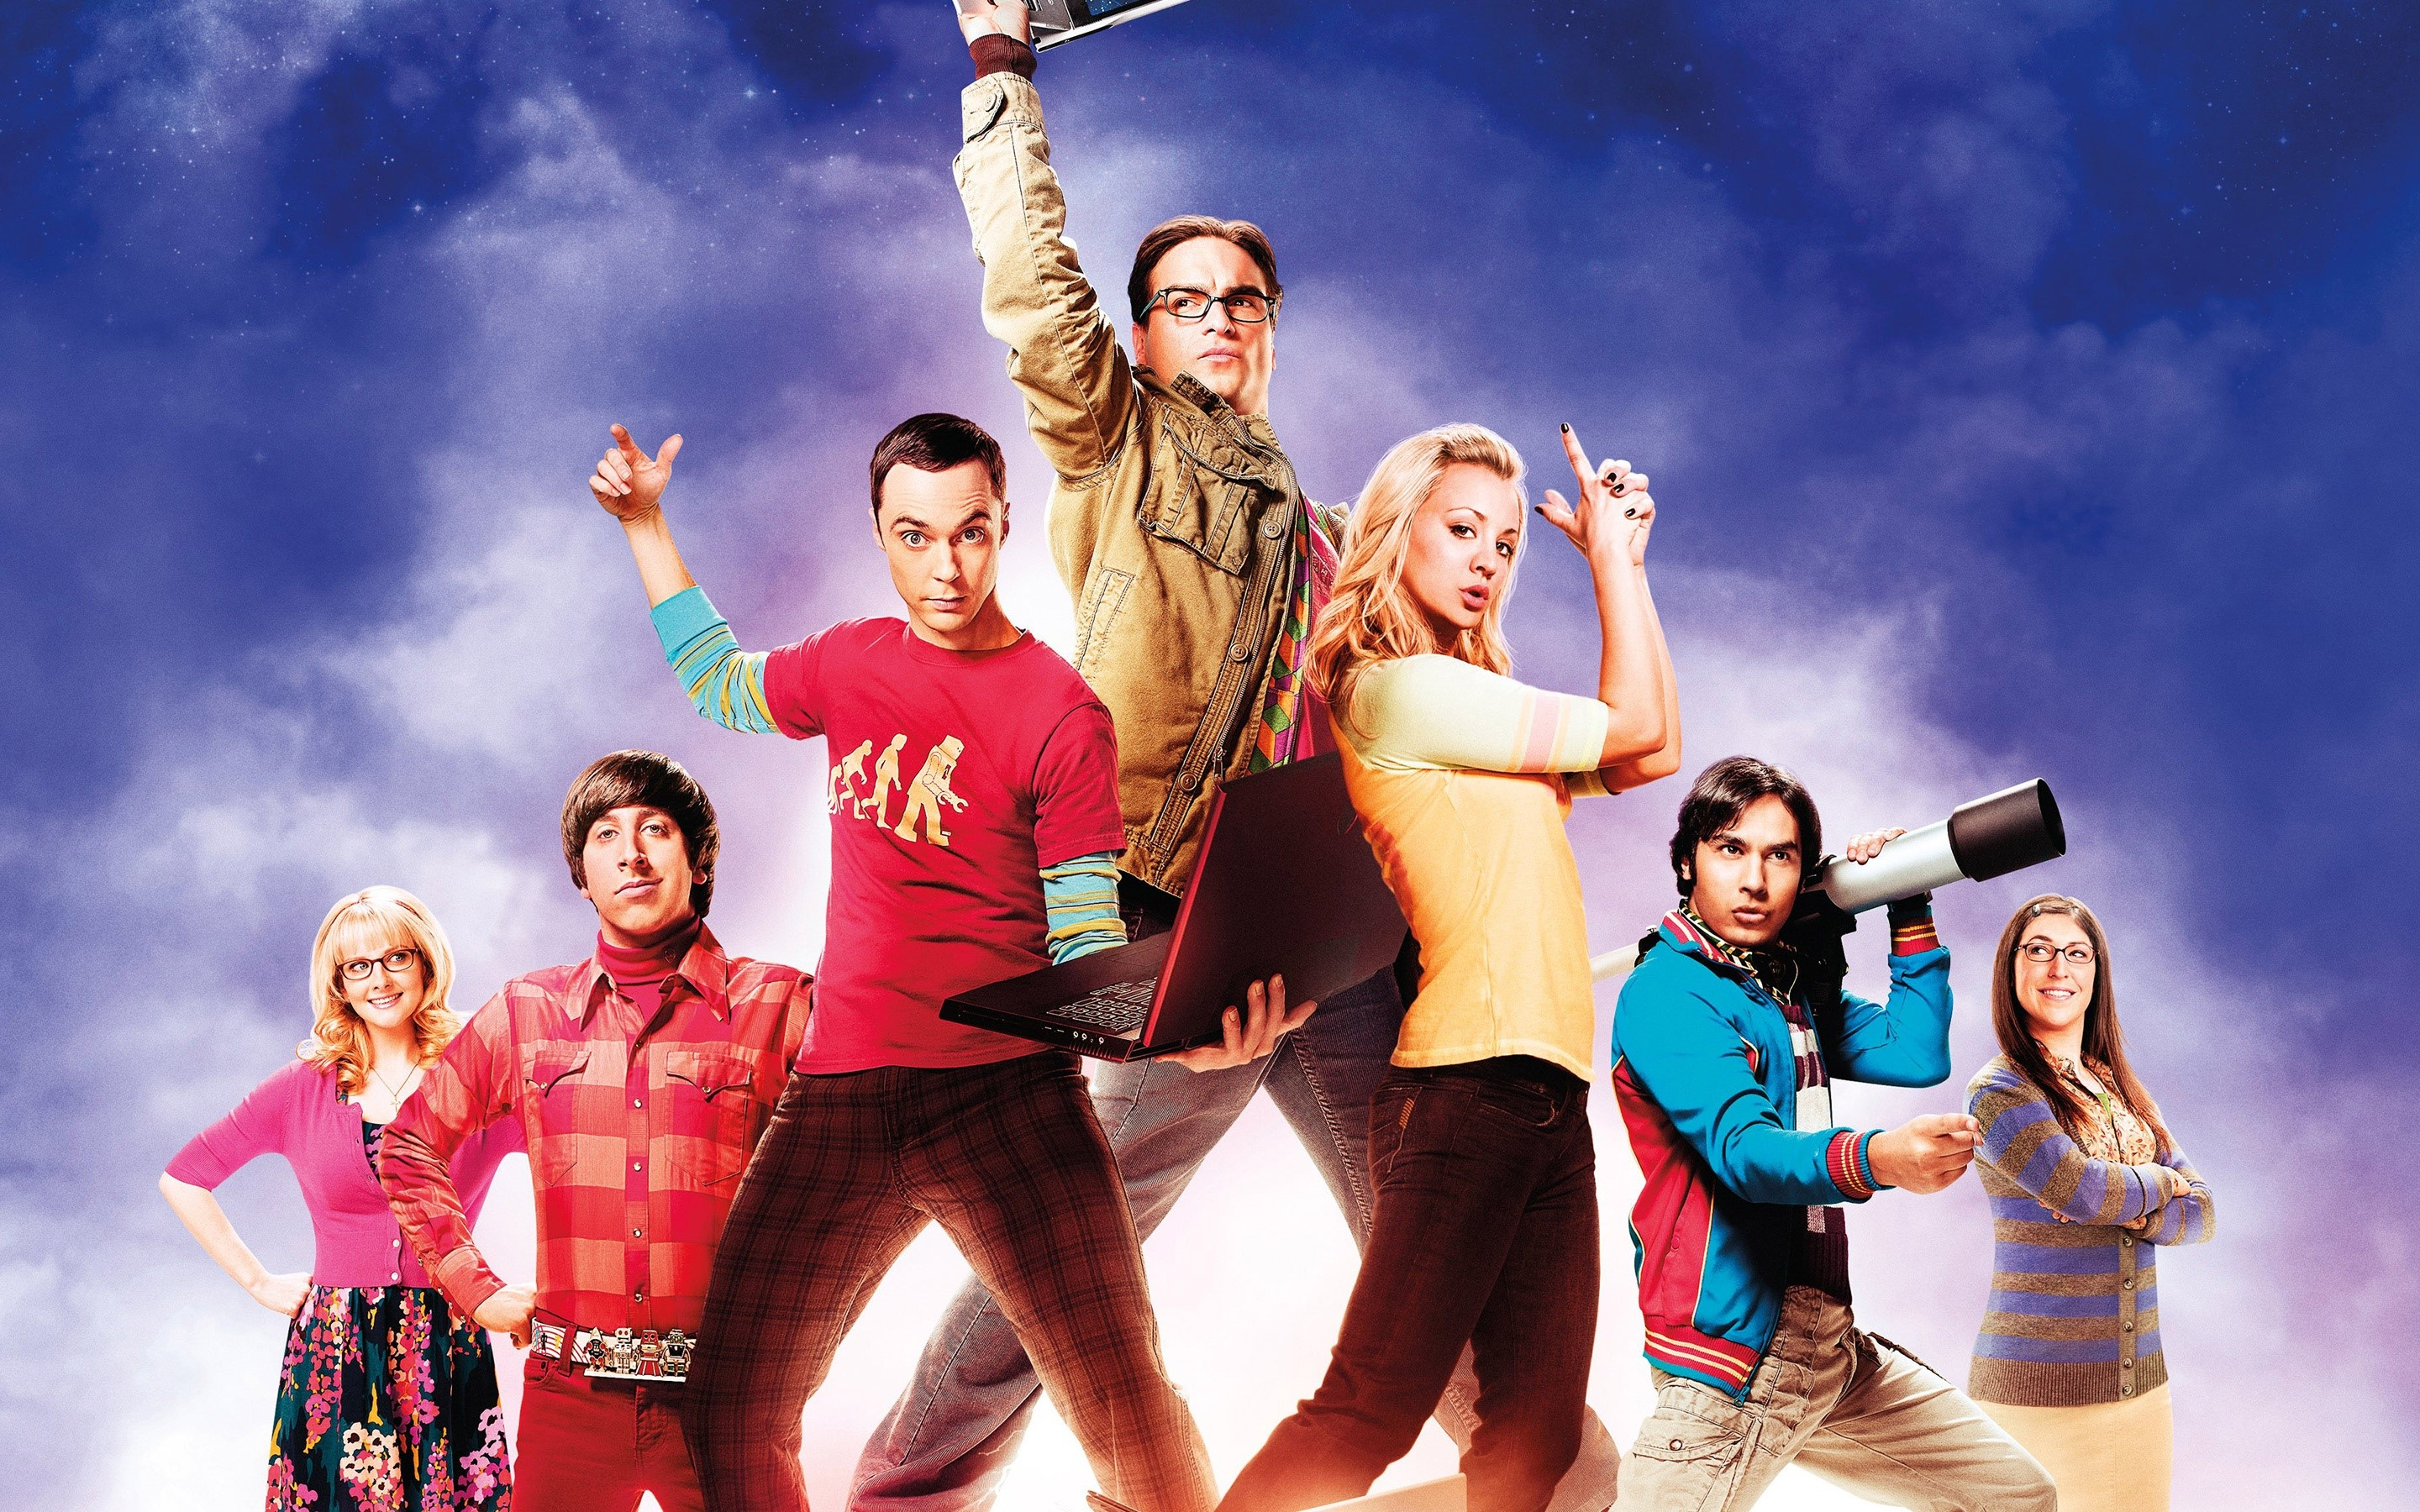 Wallpaper Big Bang Theory